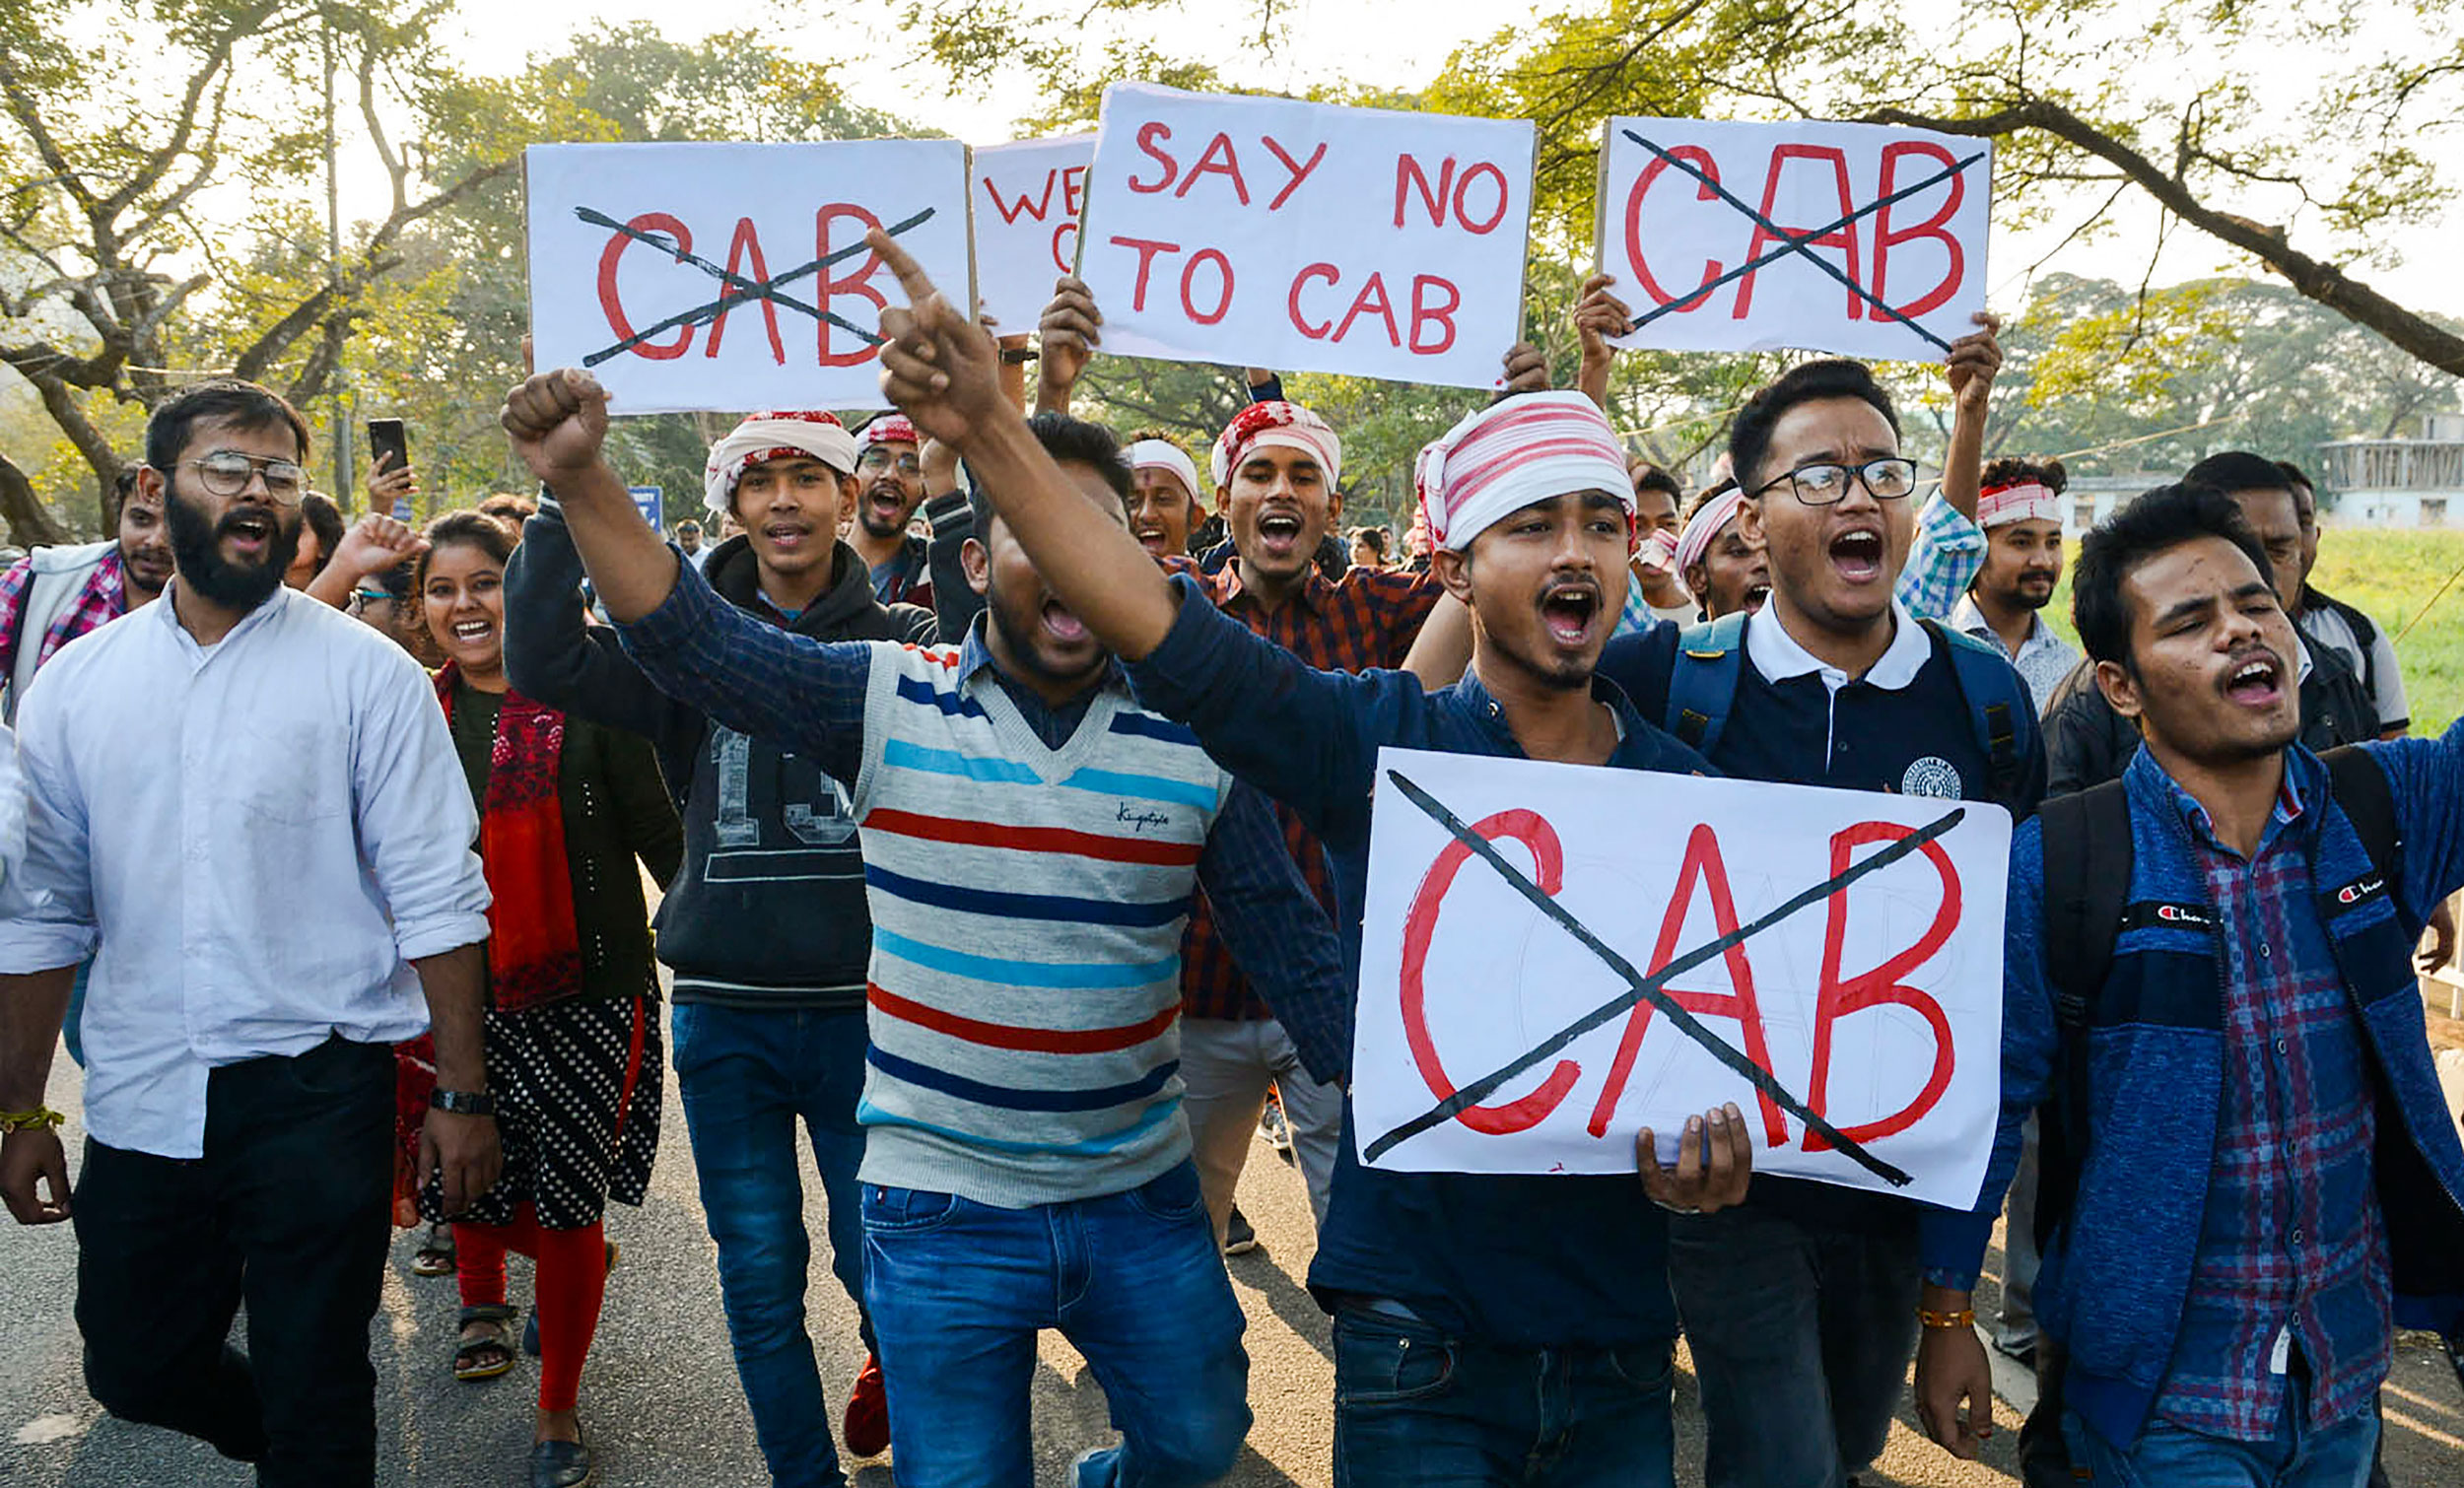 Gauhati University students hold placards as they raise slogans against Citizenship Amendment Bill in Guwahati on Monday.